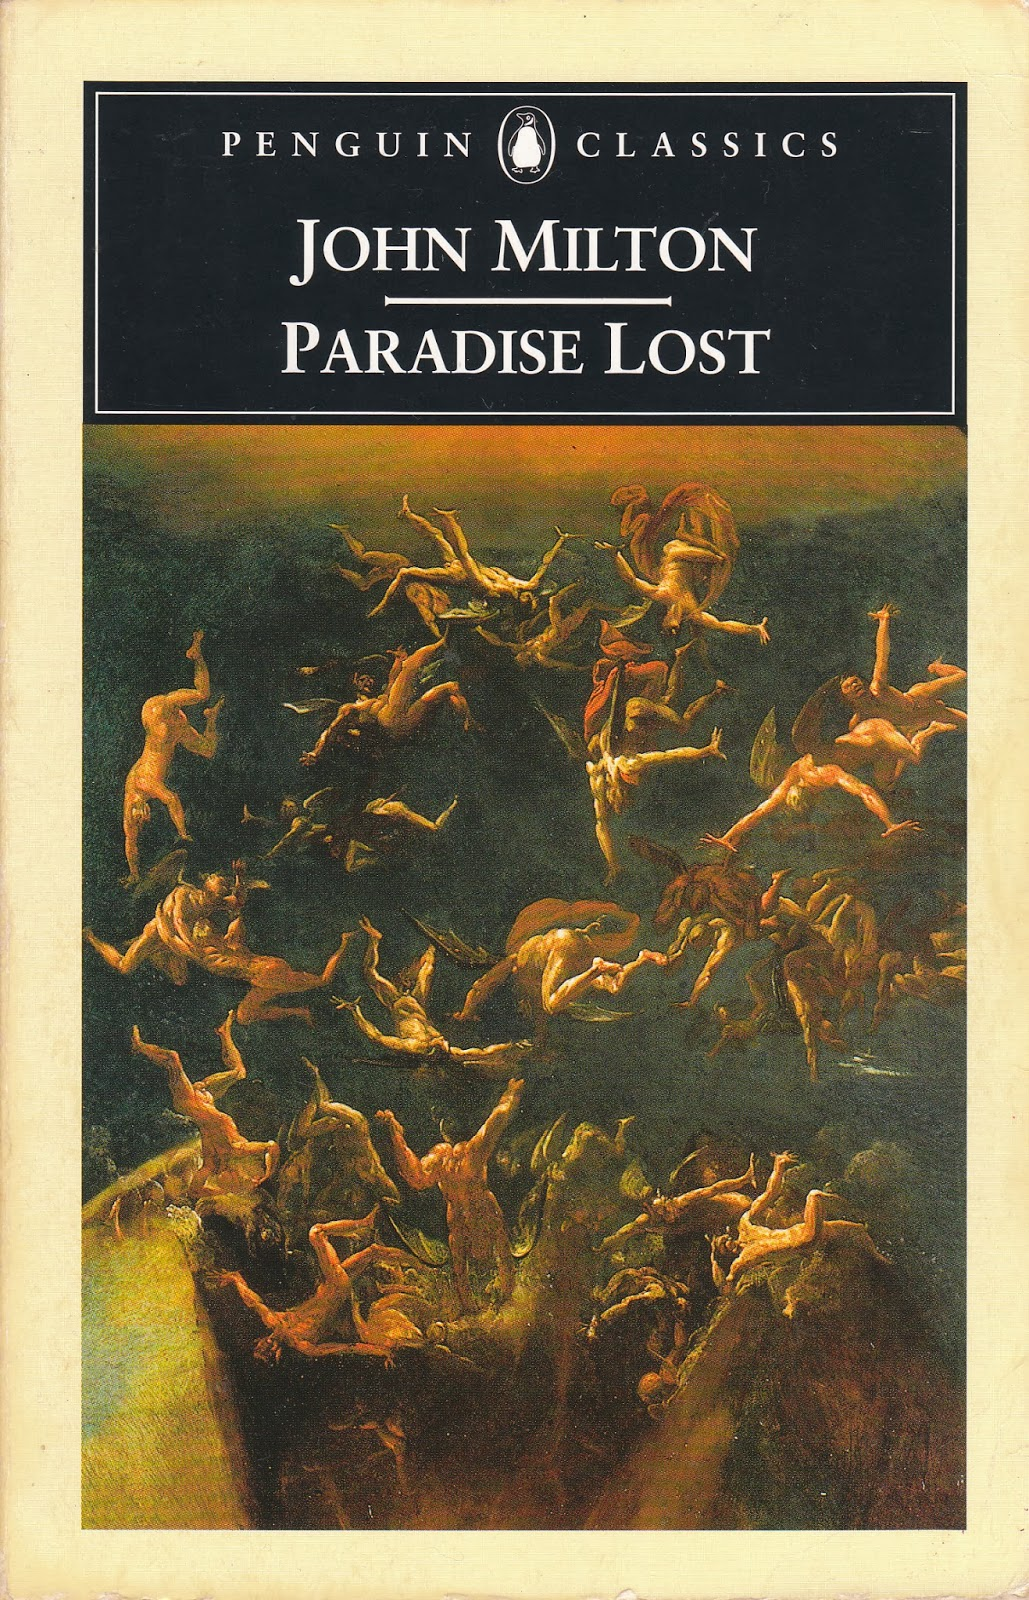 critical essays on paradise lost book 1 Tention the prevailing tone of the book is one of aggressive and ex- travagant dissatisfaction, not only with the poem but with christianity as mr peter conceives it no student repines at informed adverse criticism of paradise lost for what it is, a late renaissance christian epic in the past thirty years milton has endured.